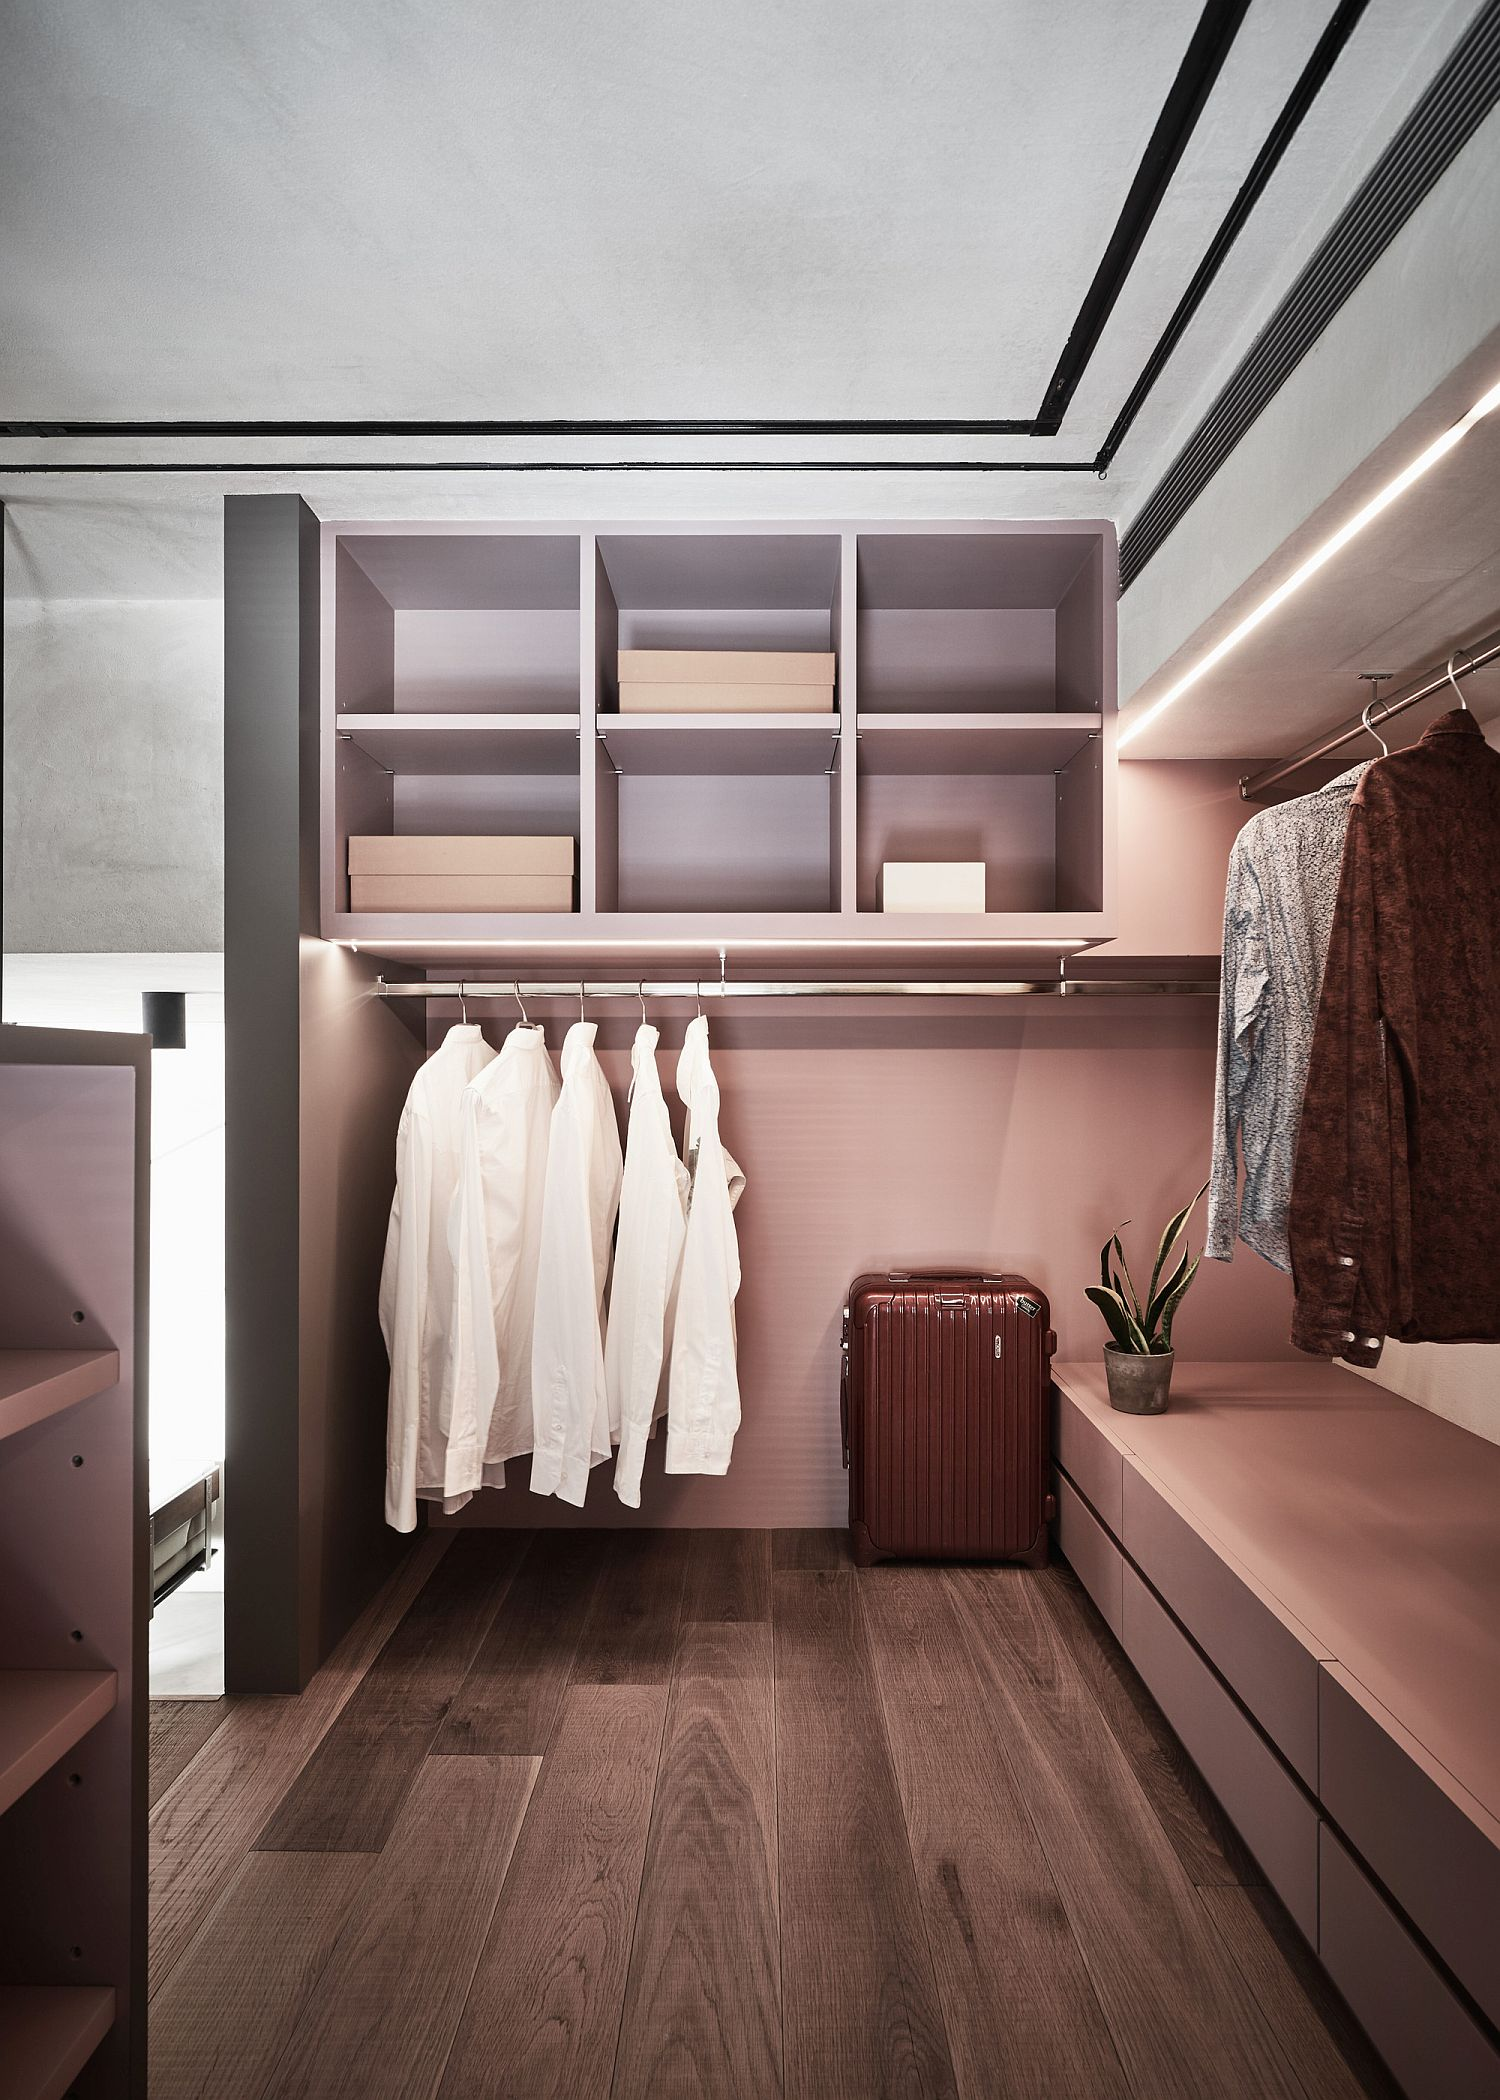 Space-savvy and simple wardrobe idea for the small bedroom